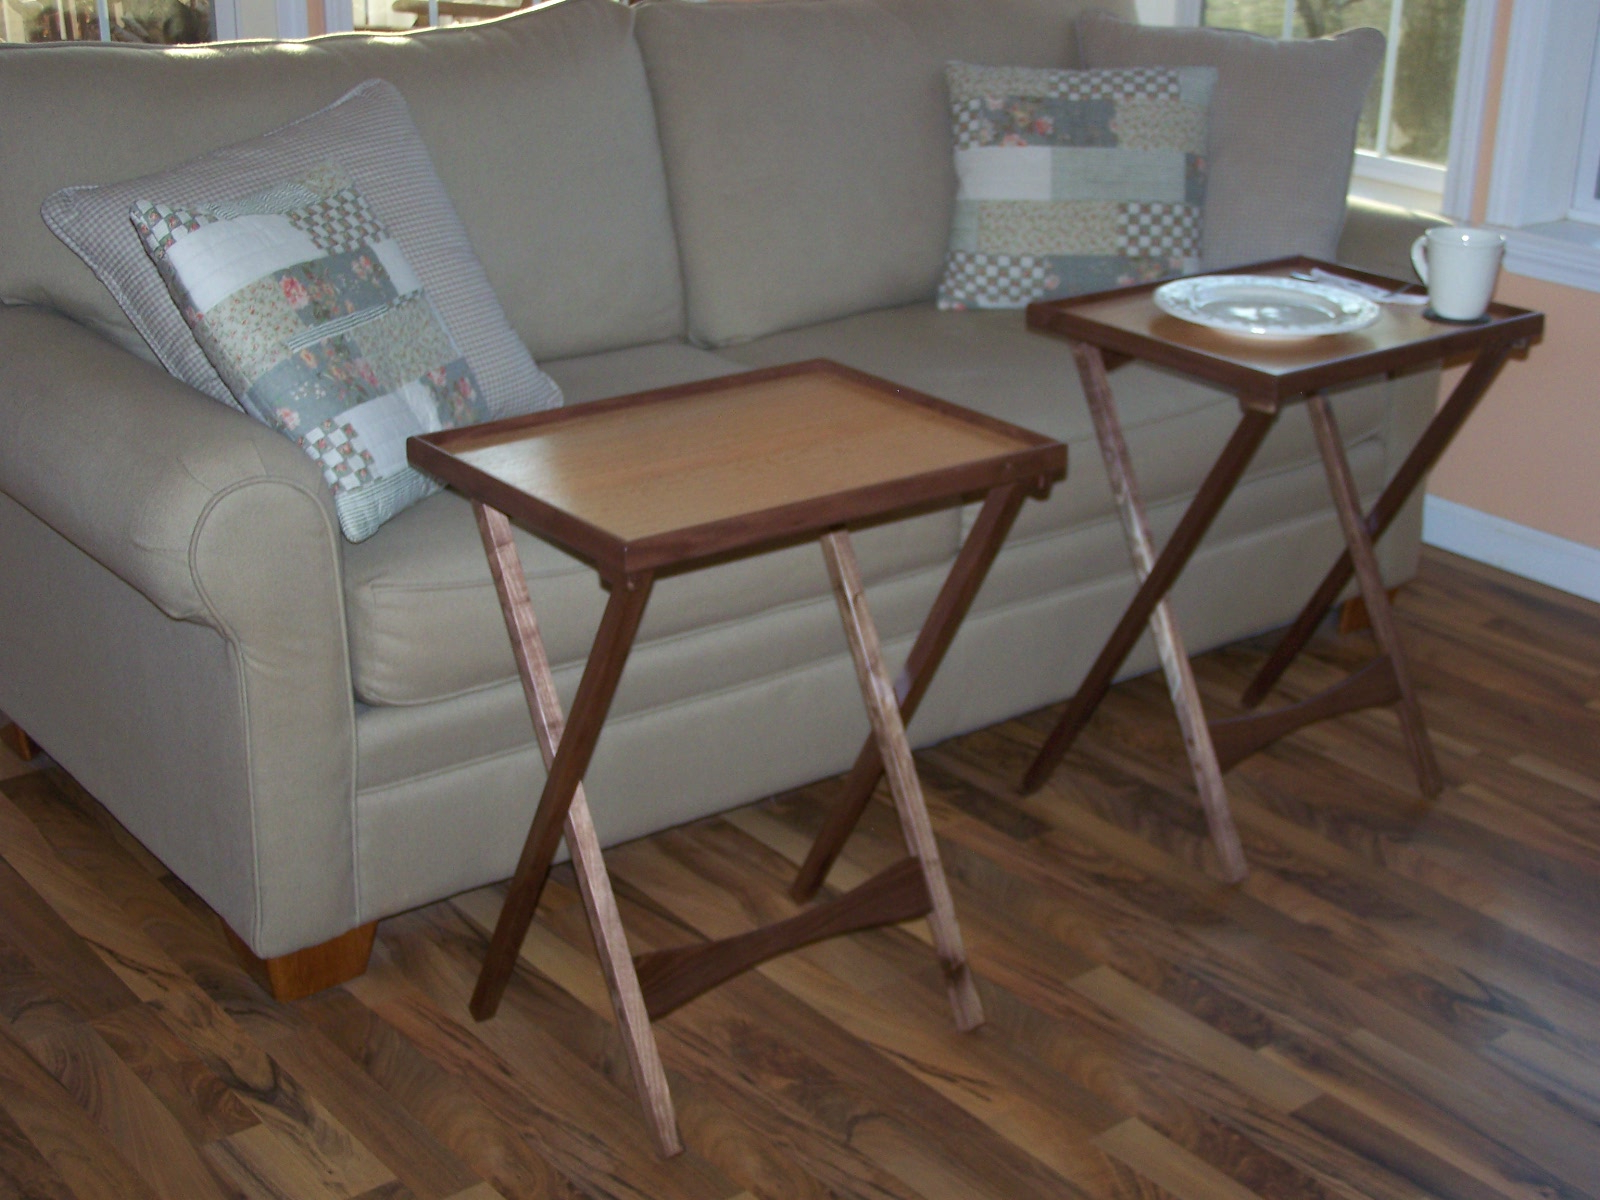 Tv Table Trays Ikea — Bmpath Furniture Throughout Popular Folding Tv Trays With Stand (View 18 of 20)